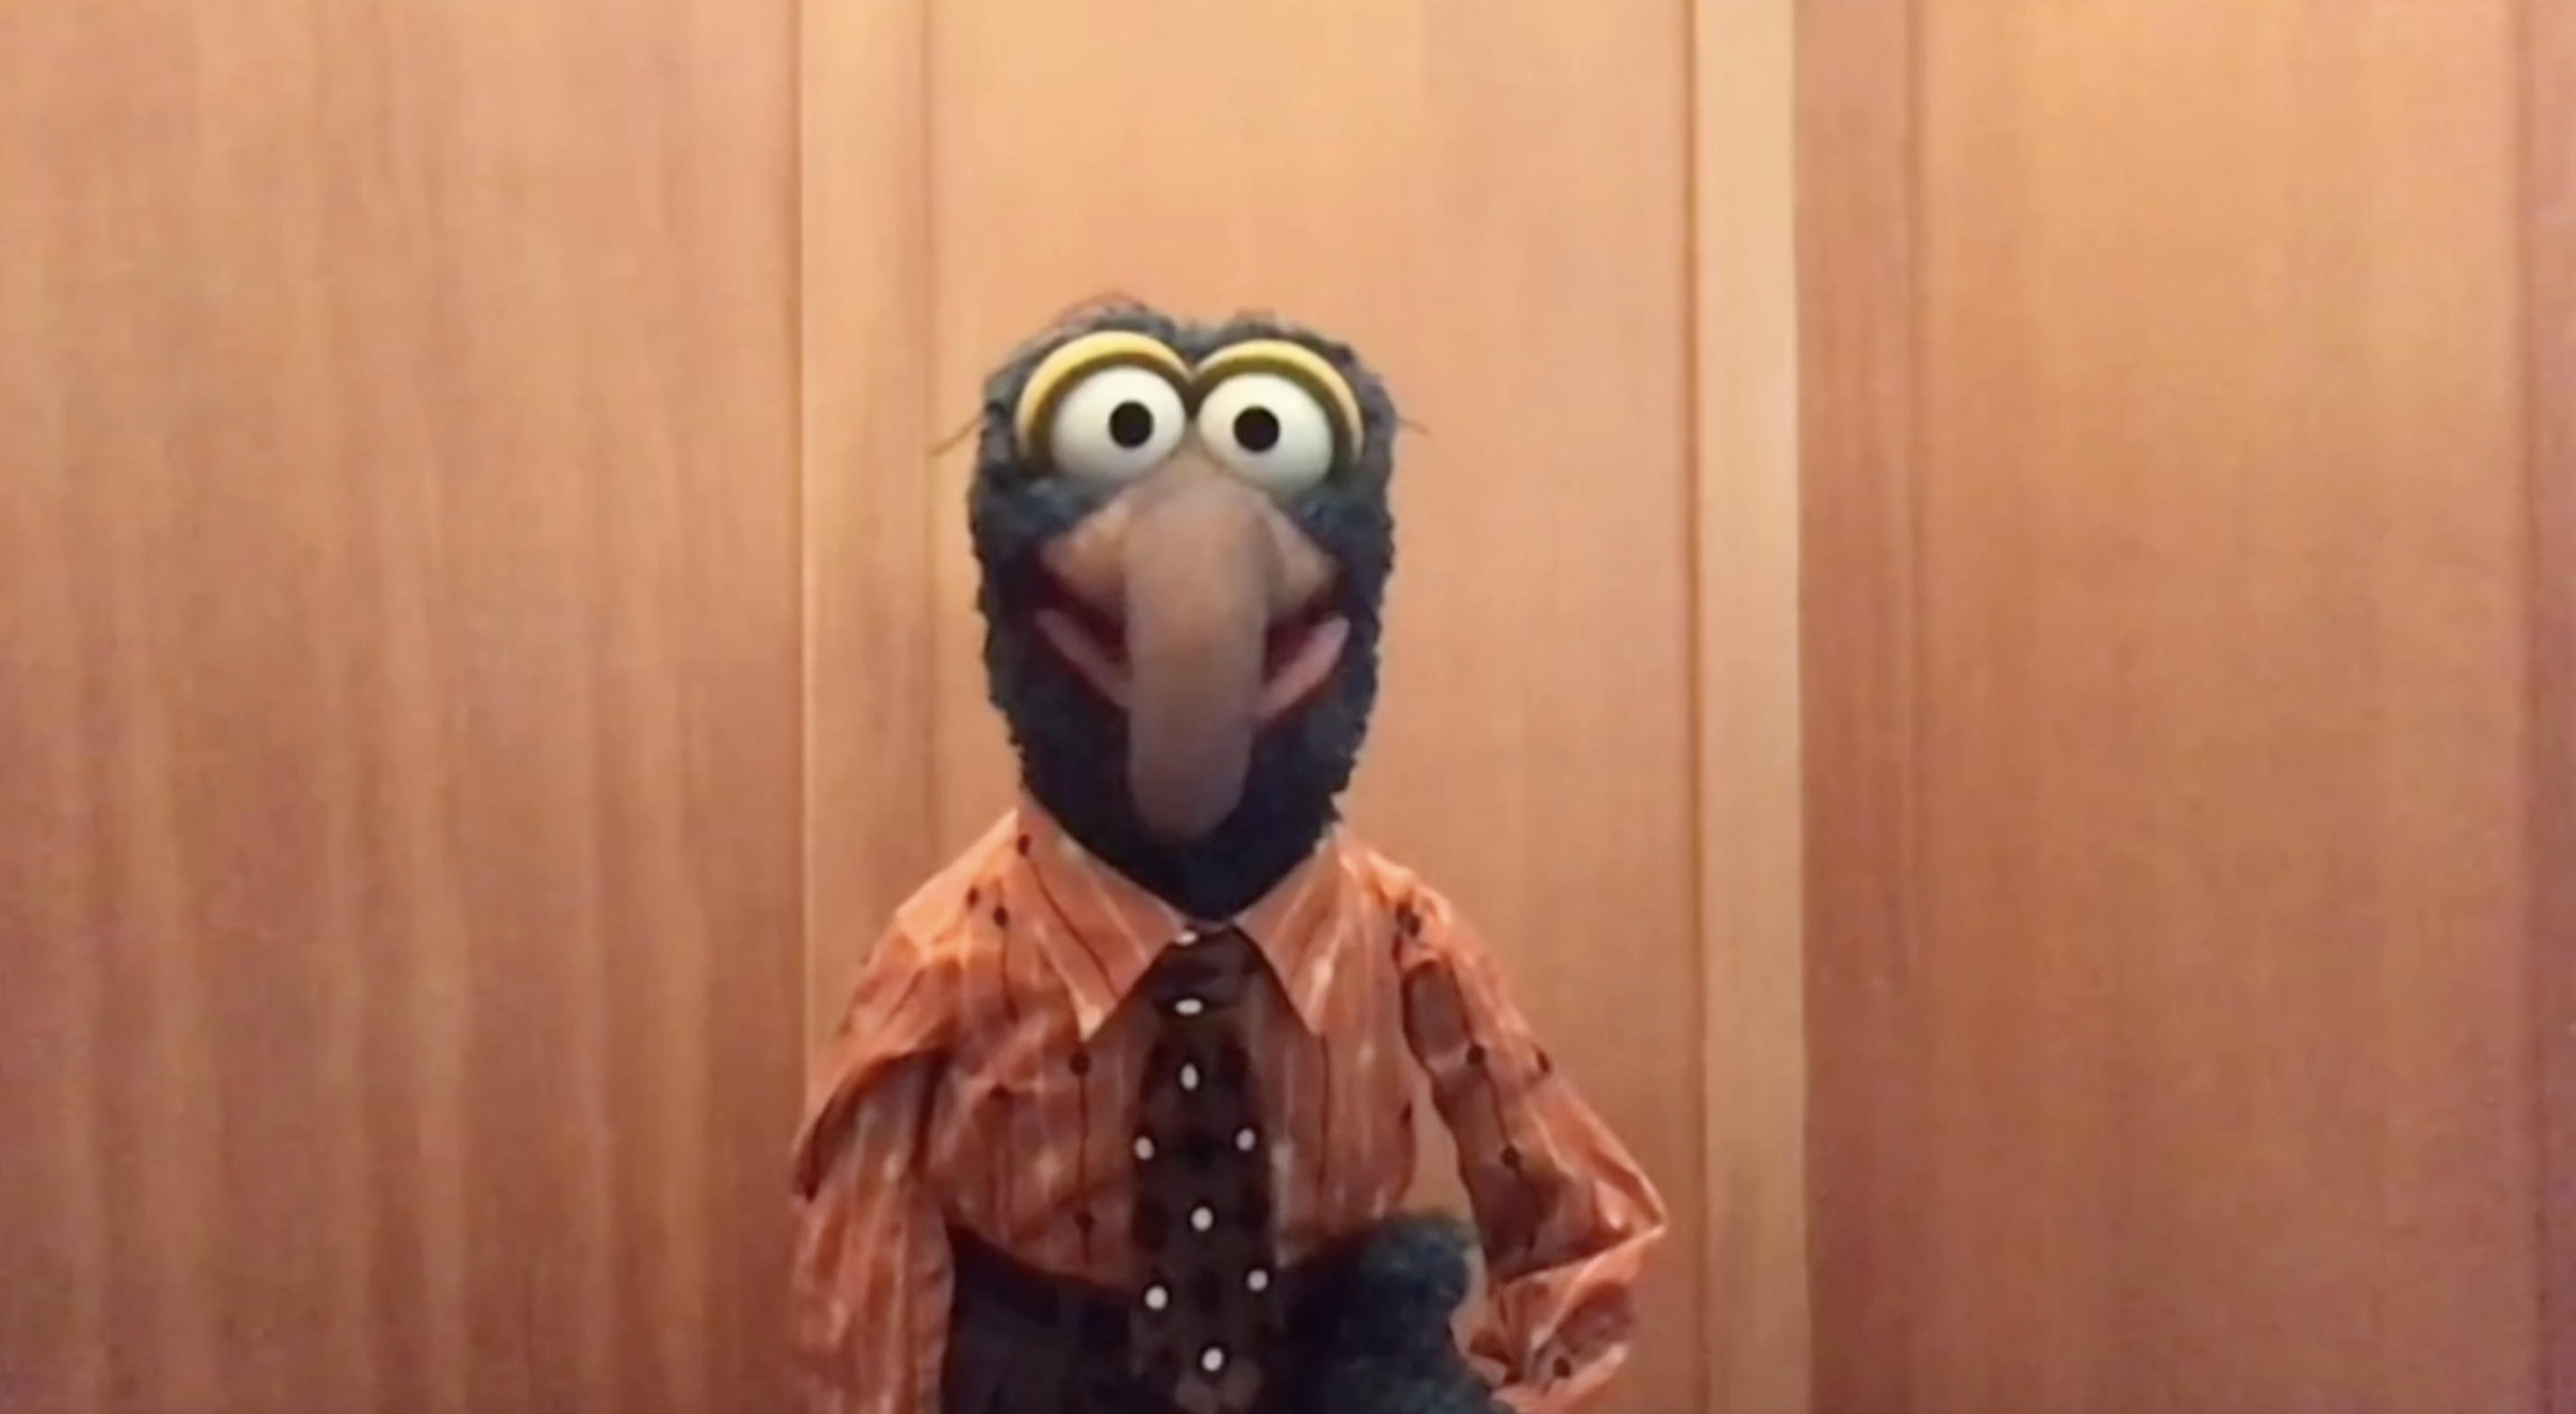 Gonzo, the muppet